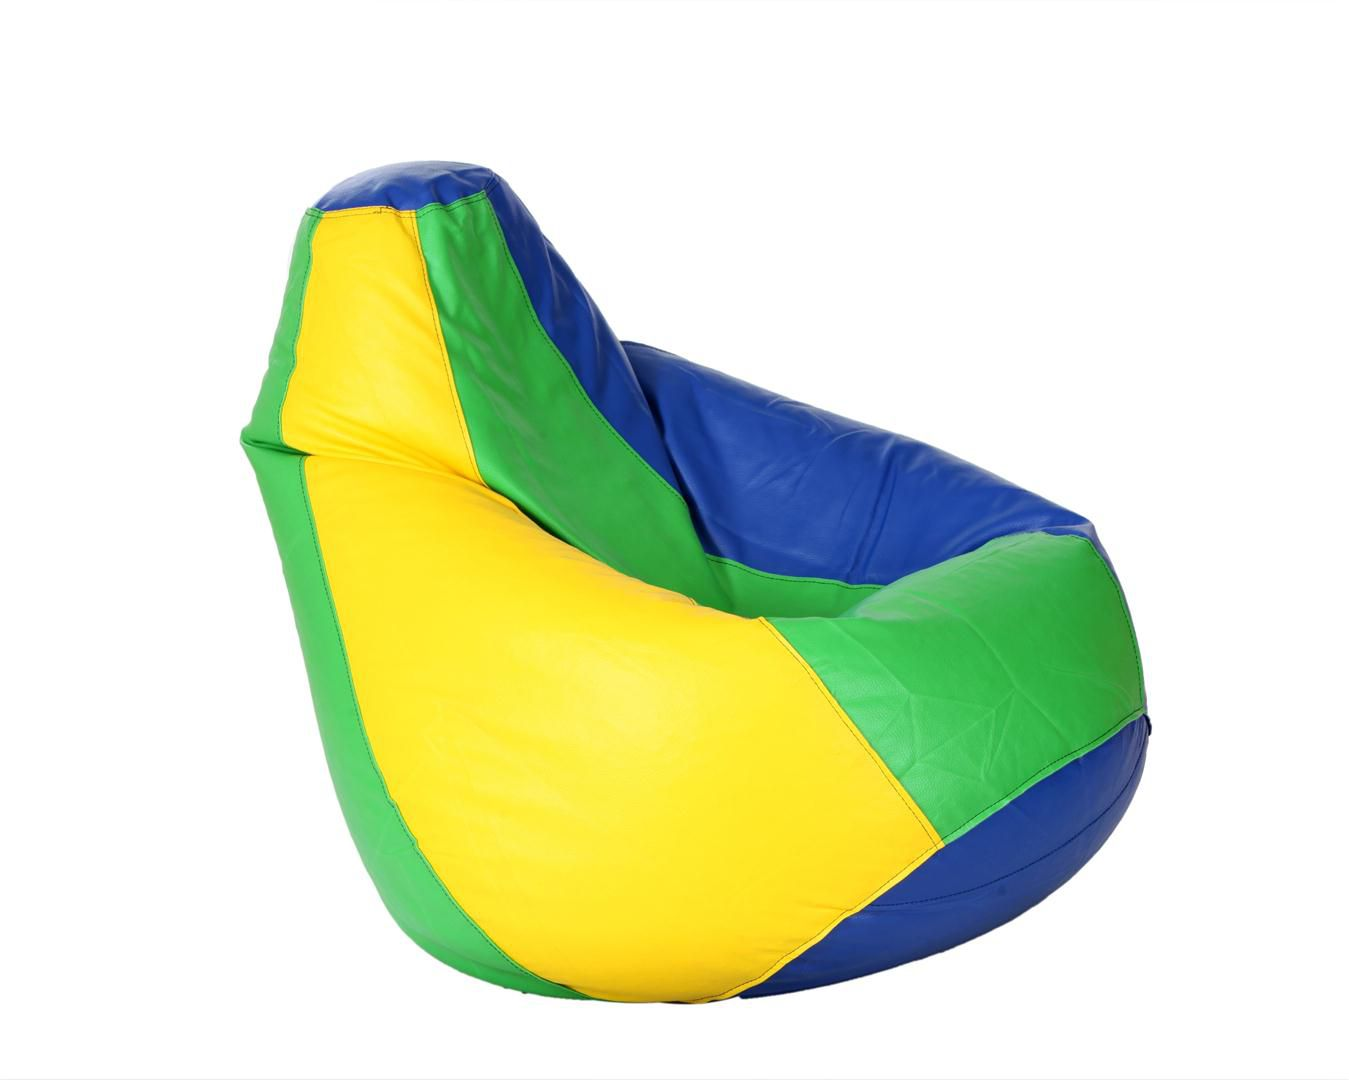 bean bag sofas india sitting room sofa pictures comfy xxl with beans in blue green and yellow